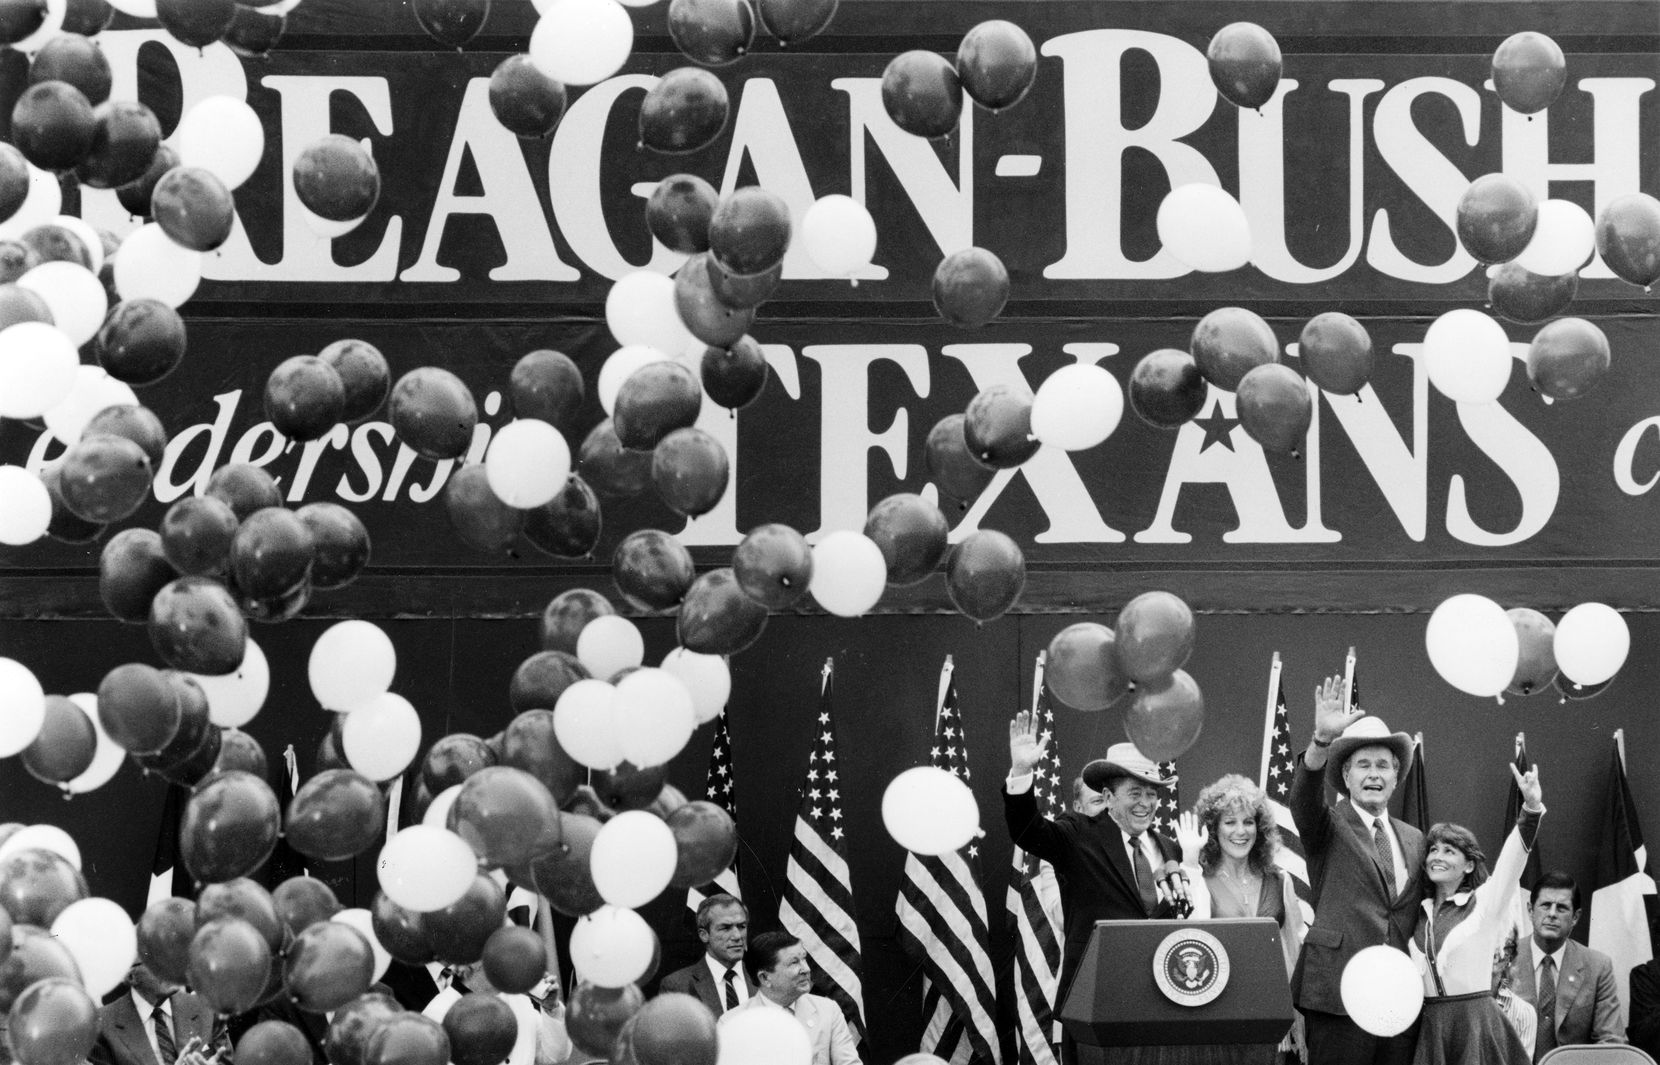 1984: President Ronald Reagan and Vice President George H. W. Bush wave to a crowd of supporters at the end of their rally in Austin. The cheerleaders shown presented them with cowboy hats.